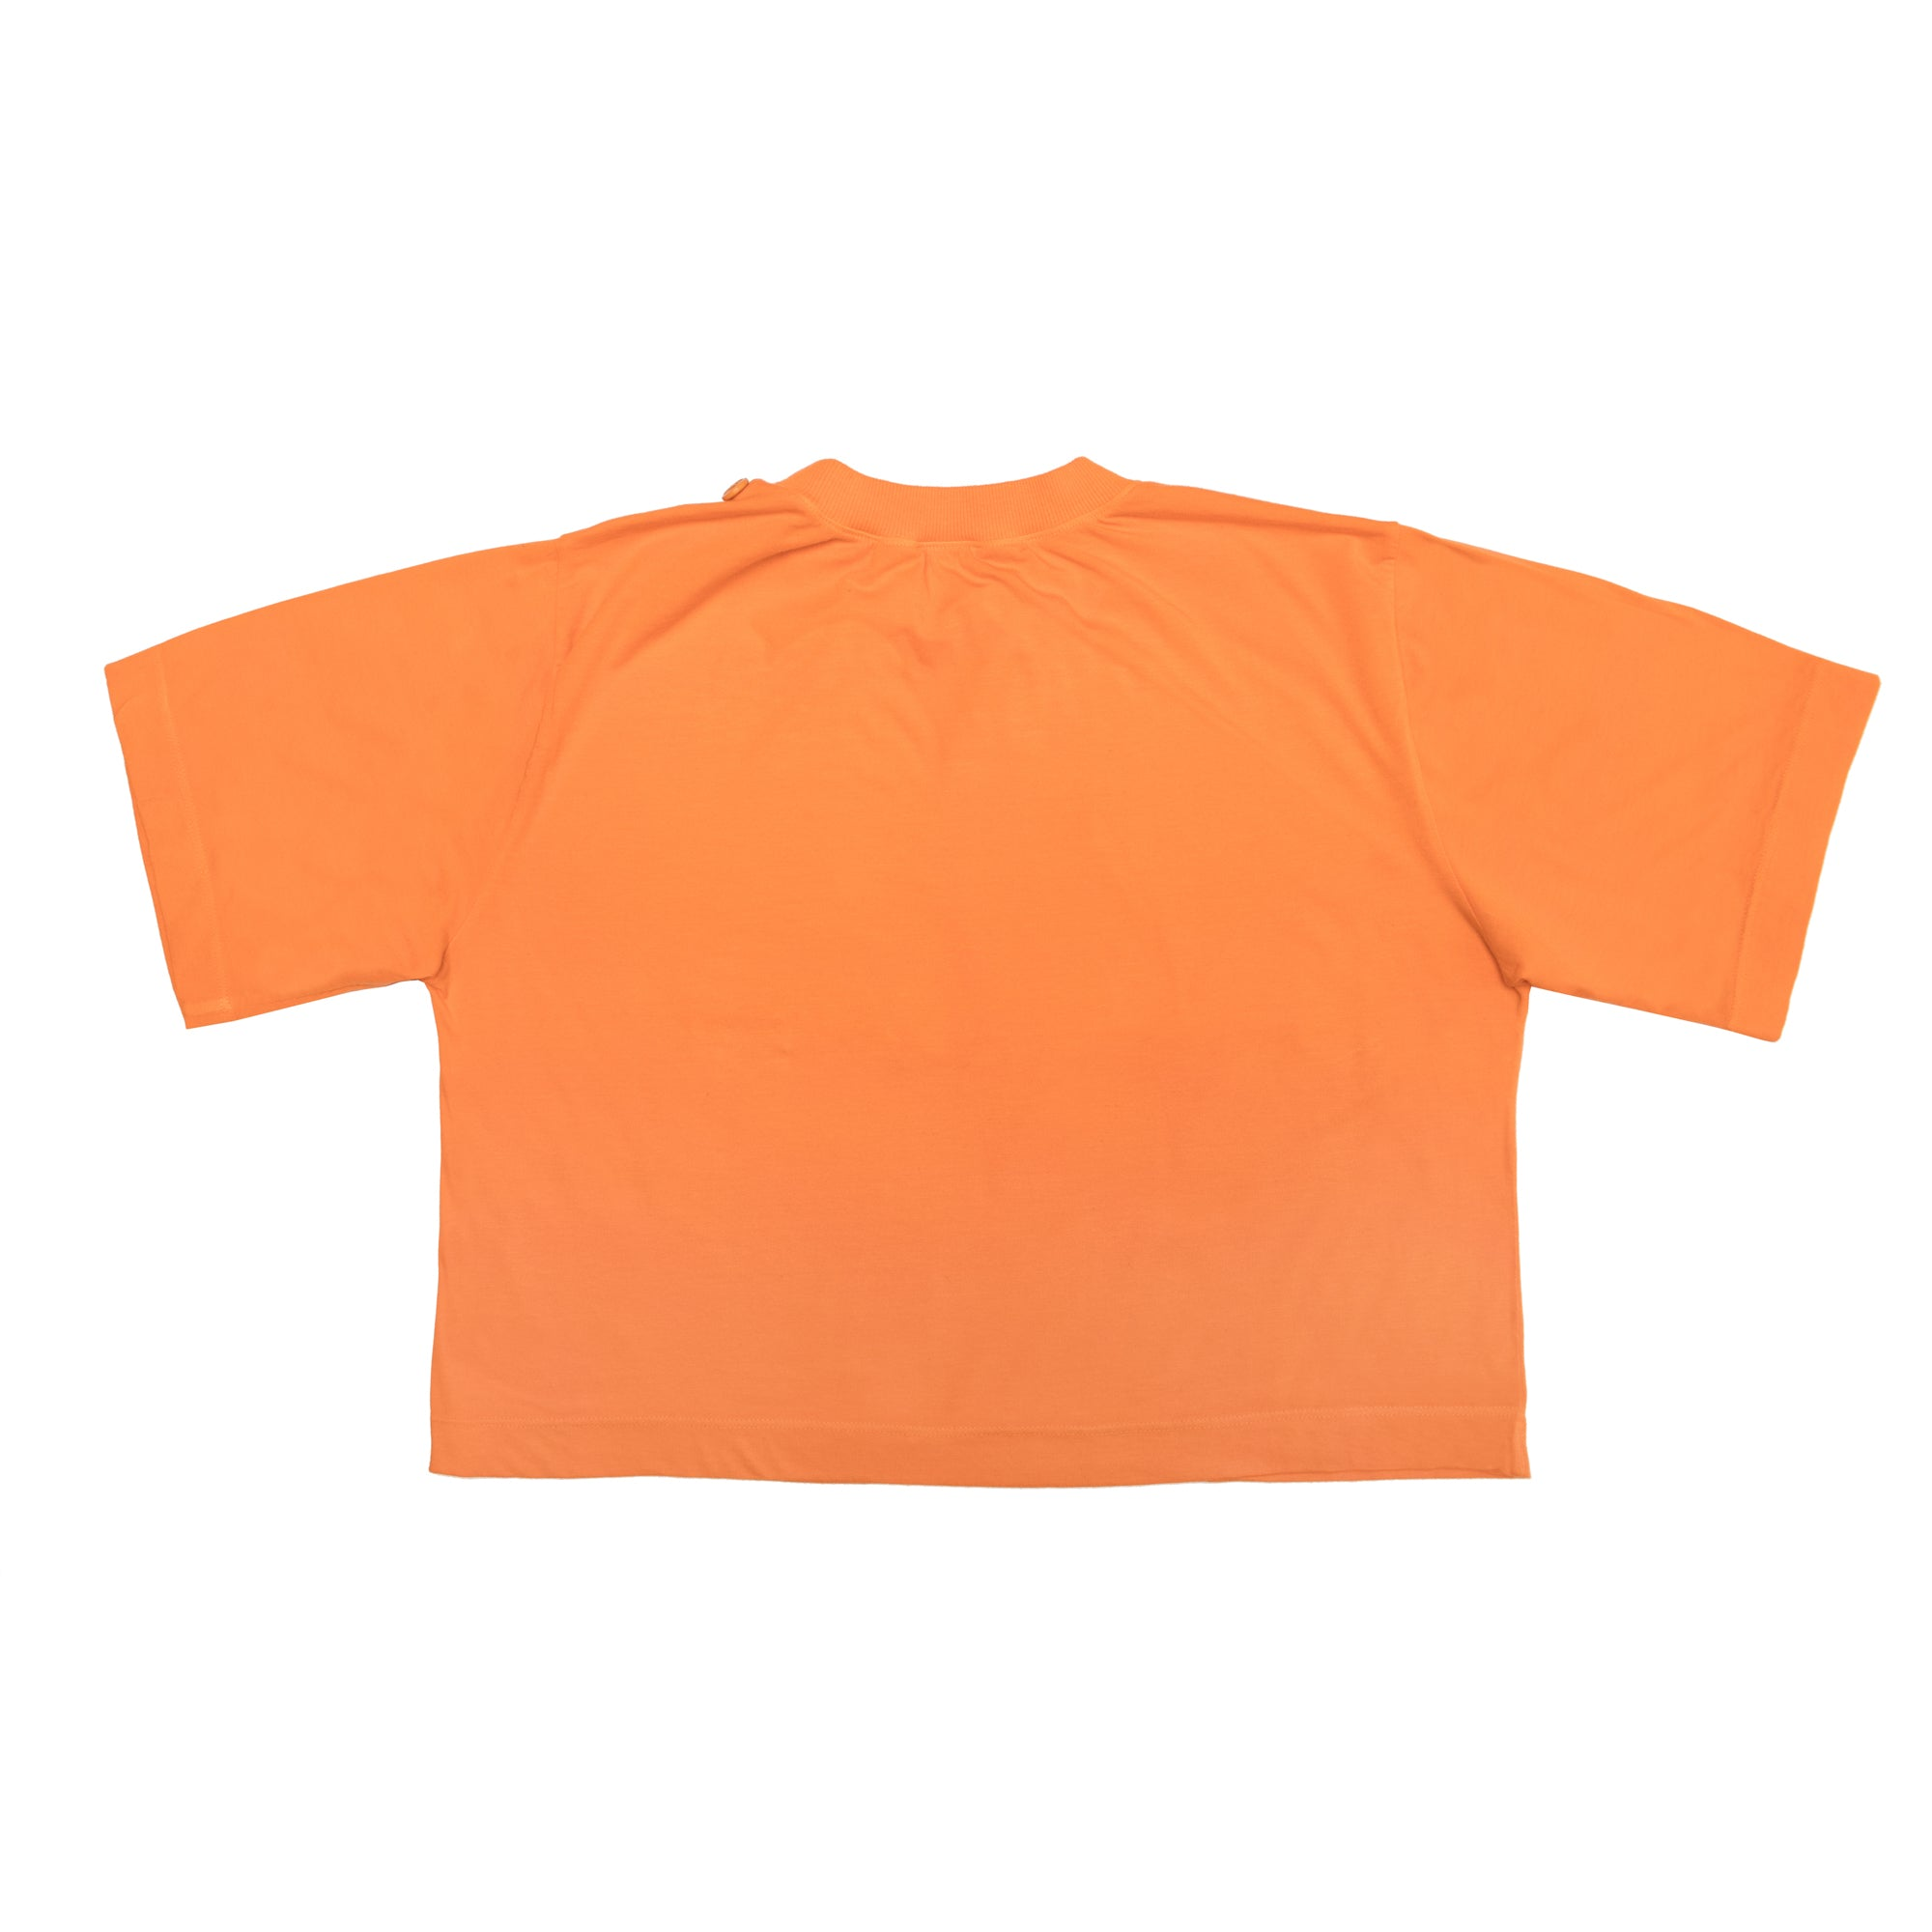 The Orange Crop Tee